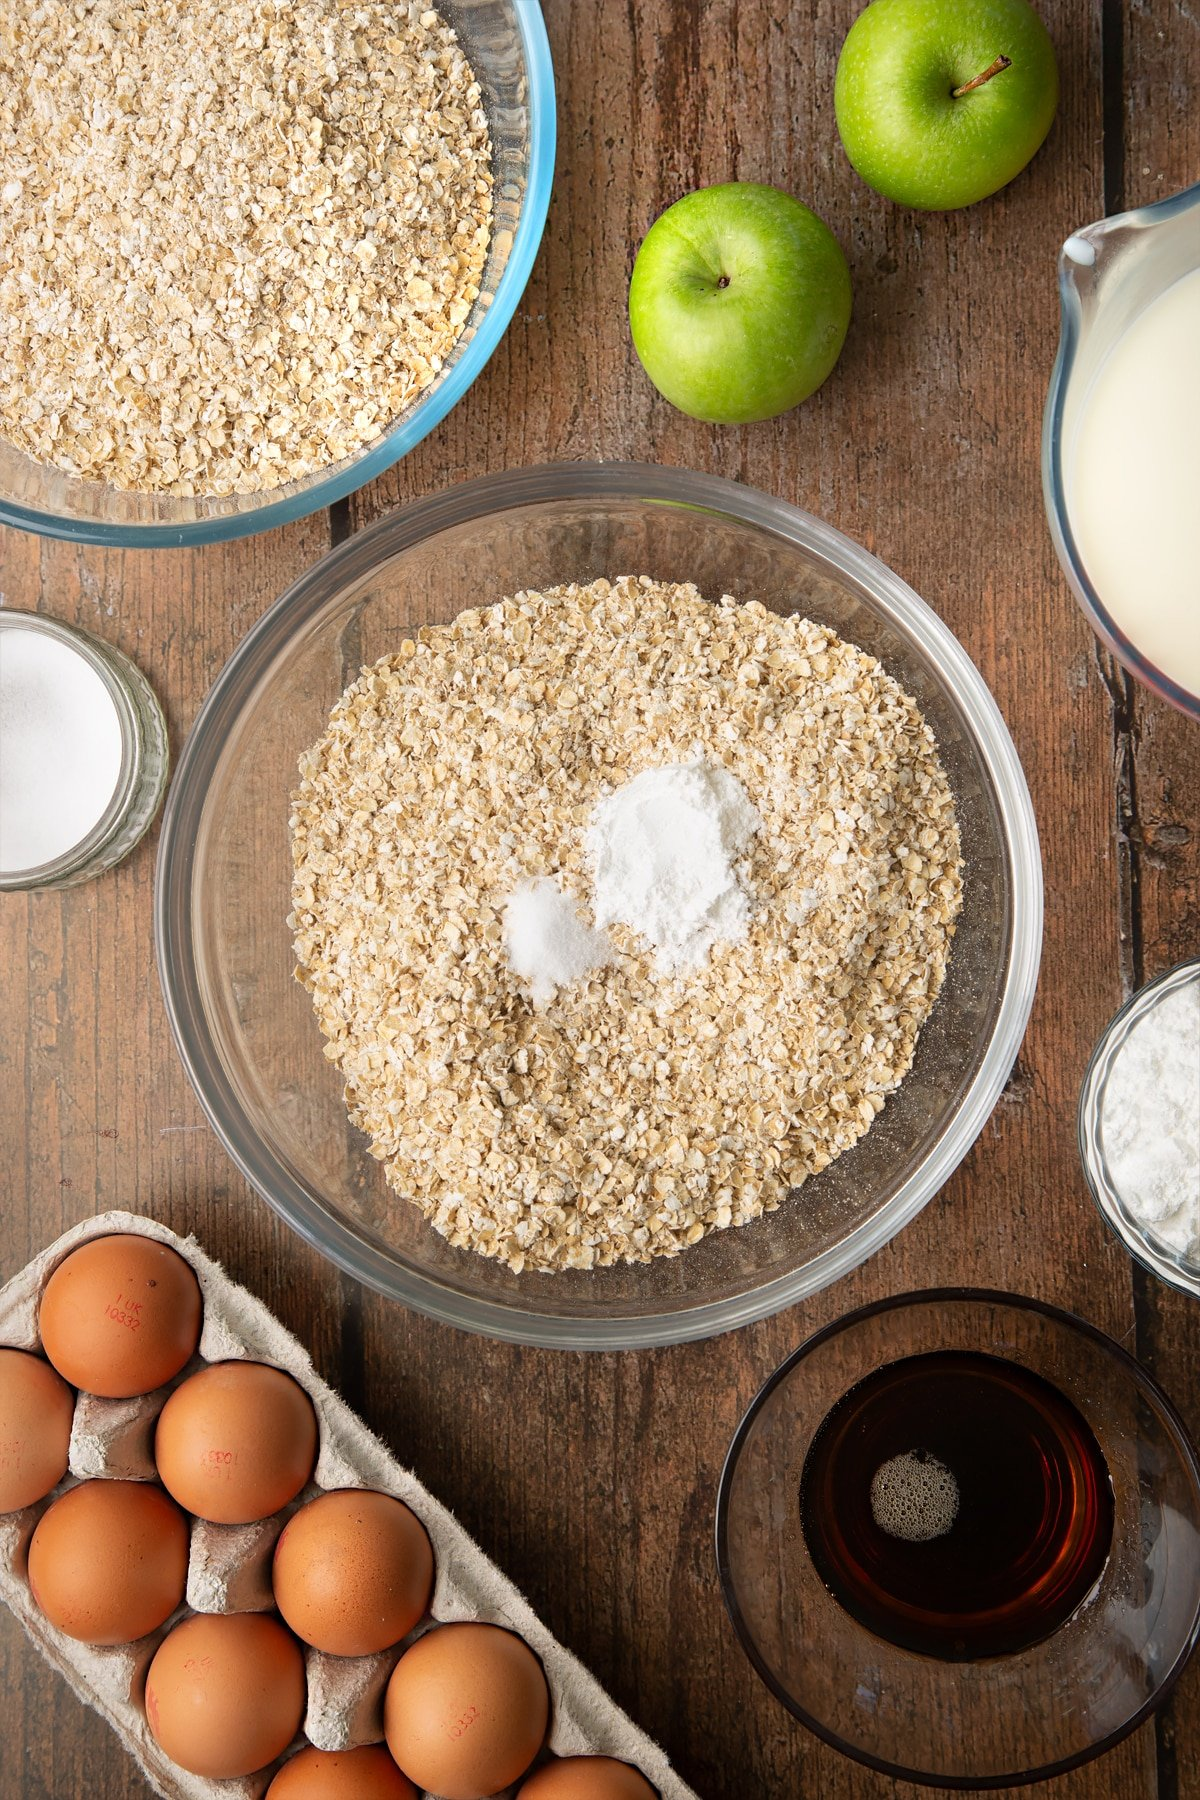 Oats, baking powder and salt in a glass mixing bowl. Ingredients to make porridge squares surround the bowl.